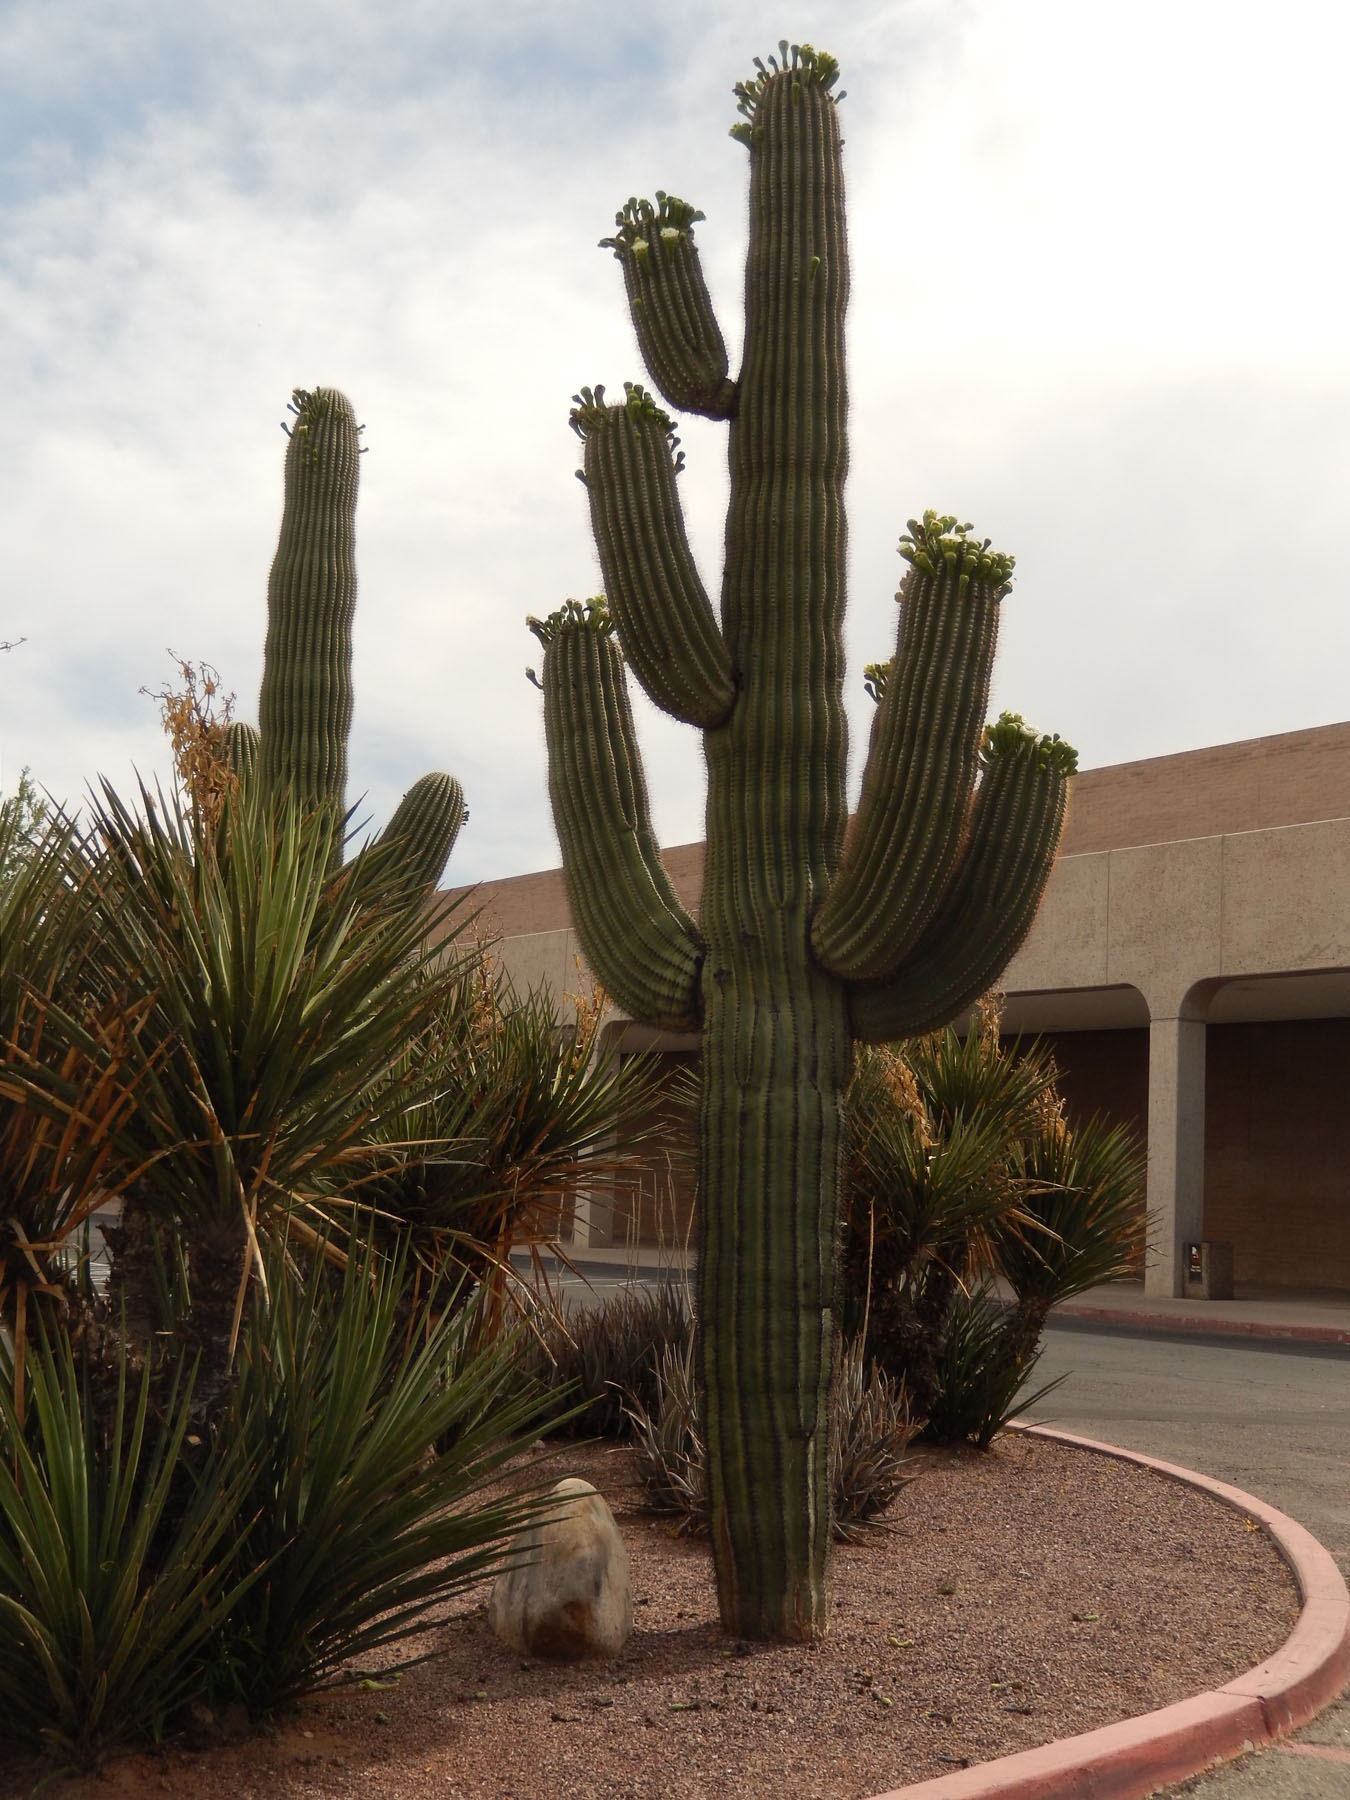 Don't Miss Tucson, Even in Summer